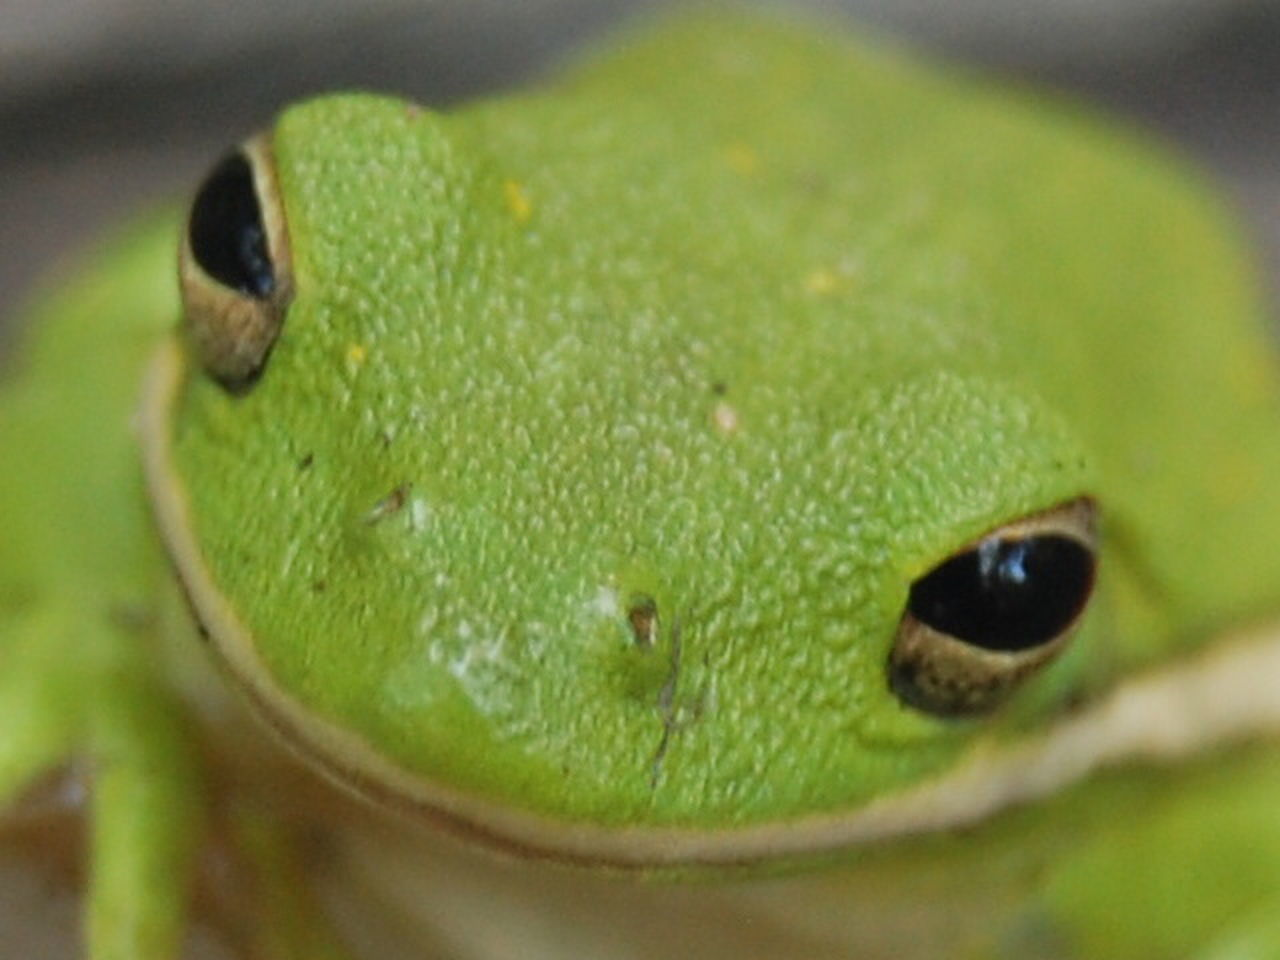 green color, close-up, one animal, animal wildlife, animal themes, no people, animals in the wild, day, nature, reptile, outdoors